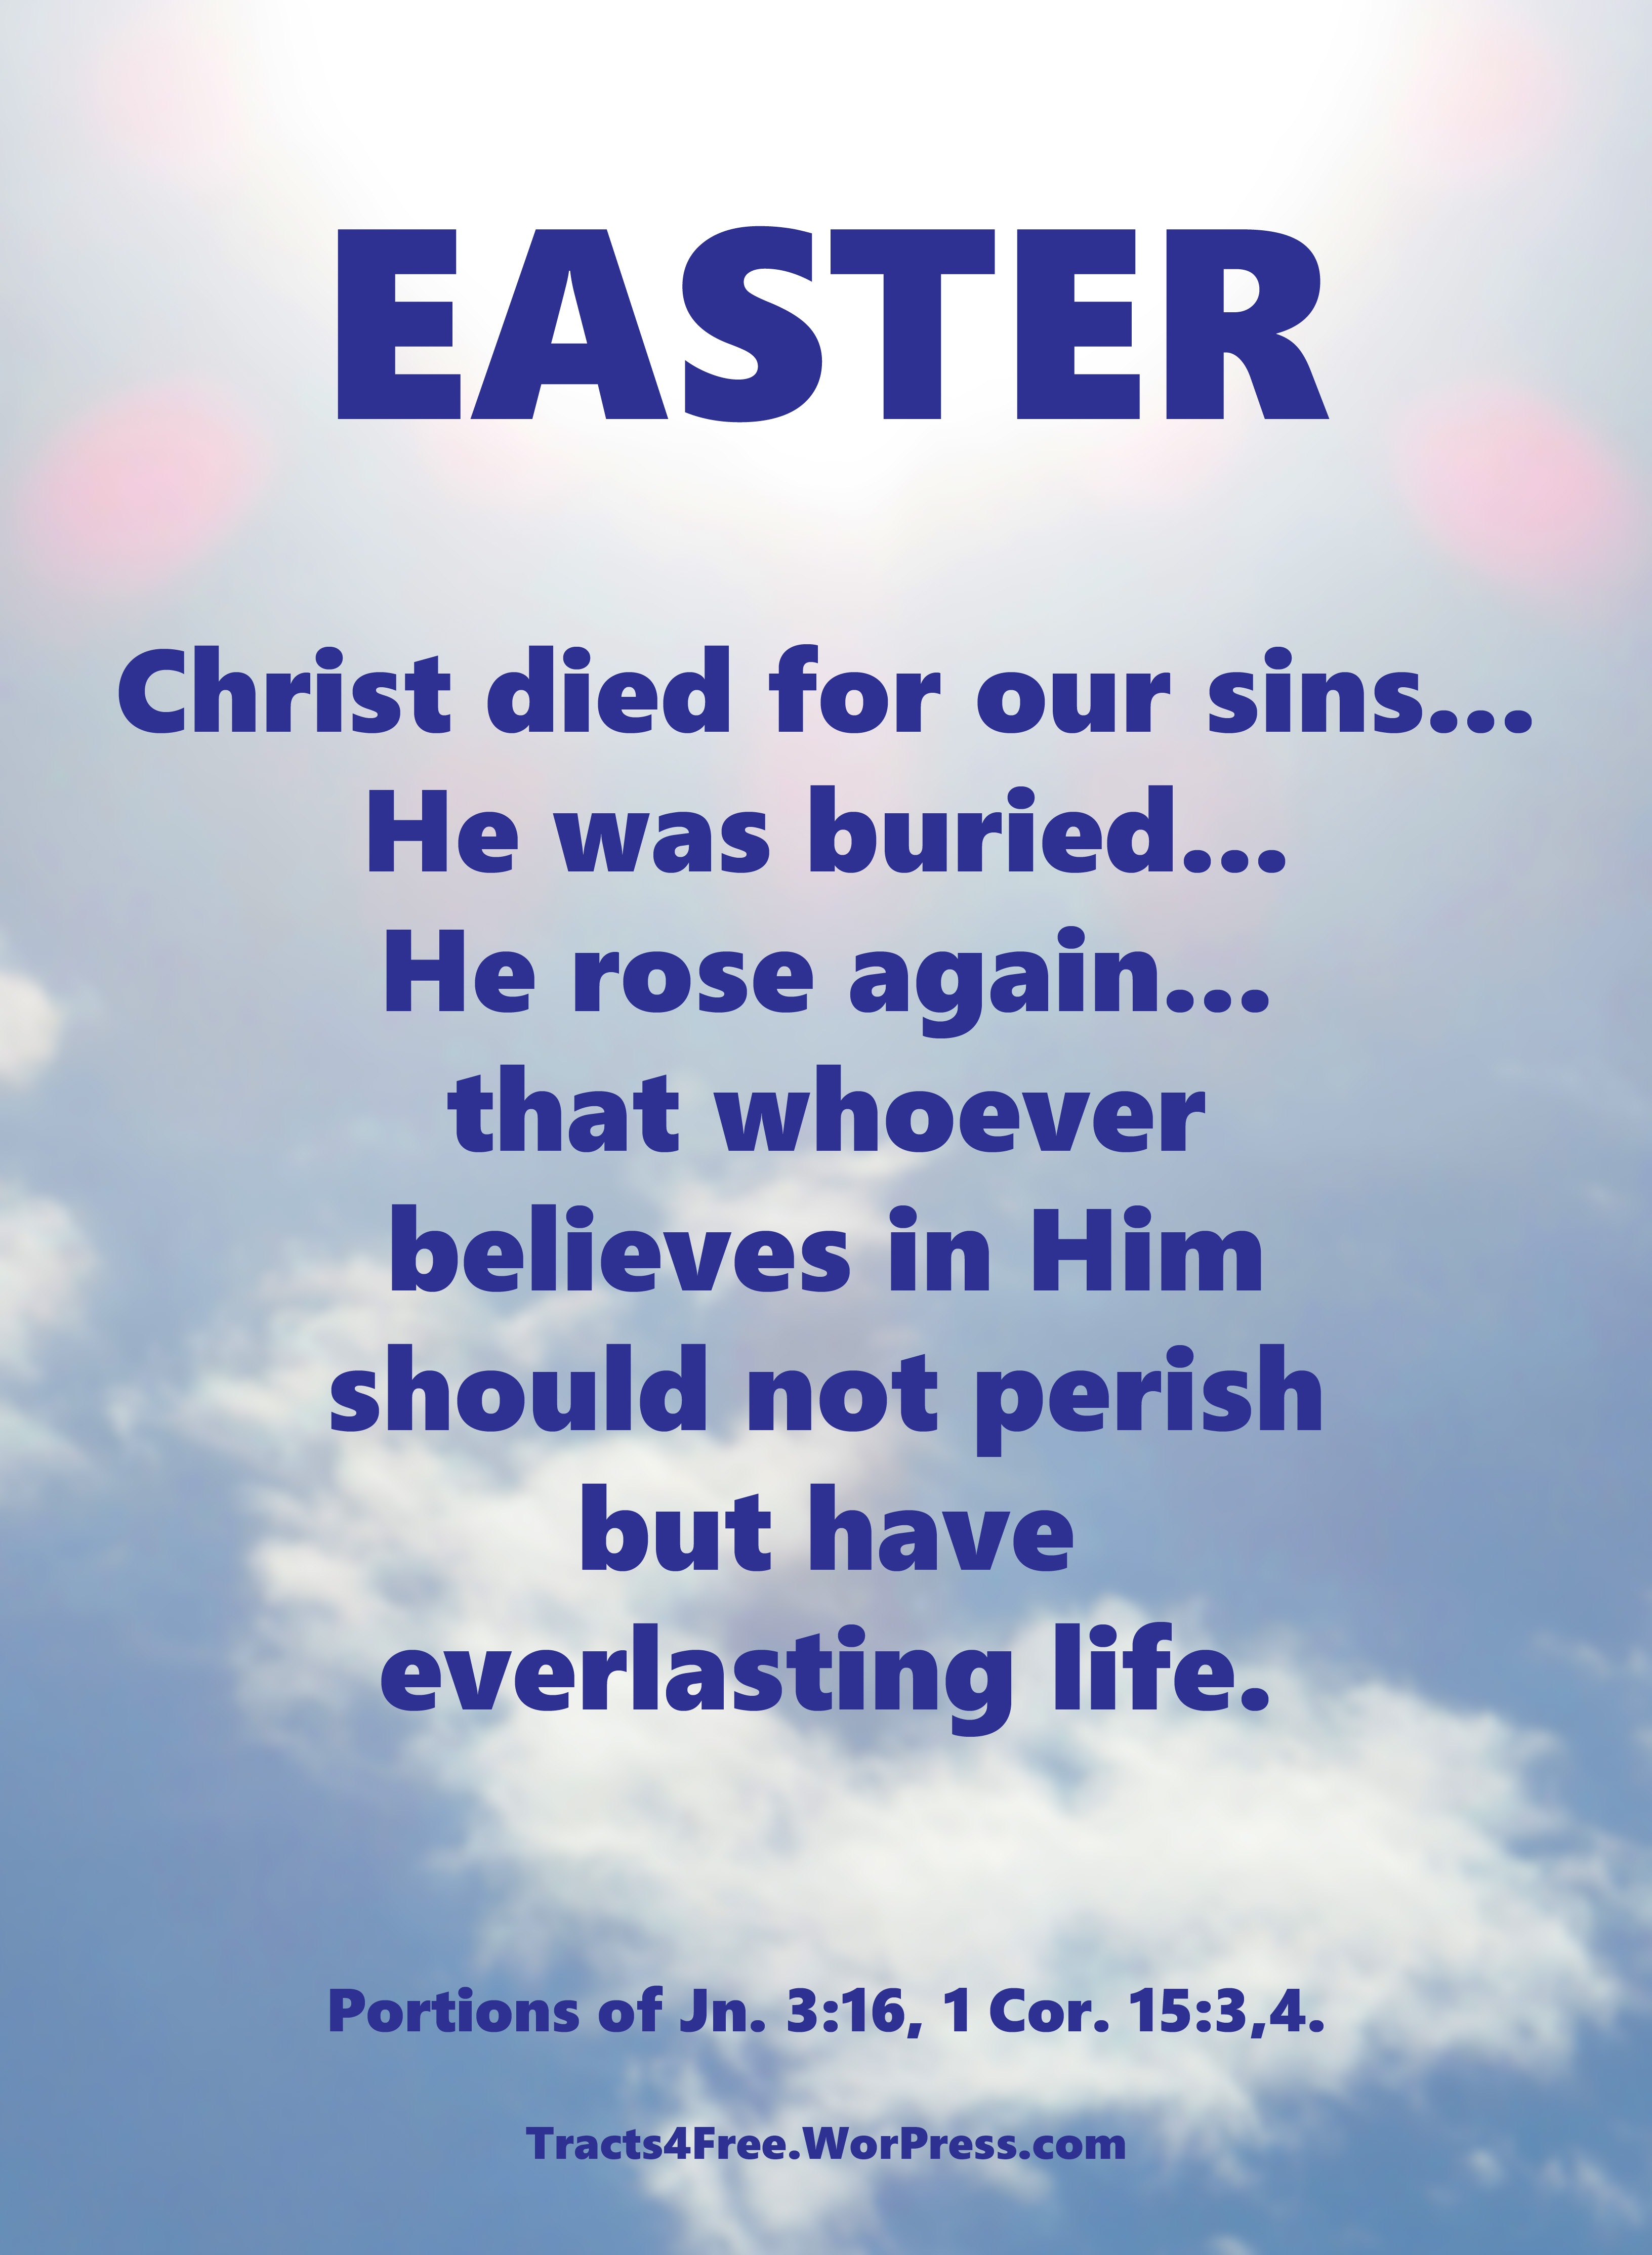 Easter Posters Tracts4free